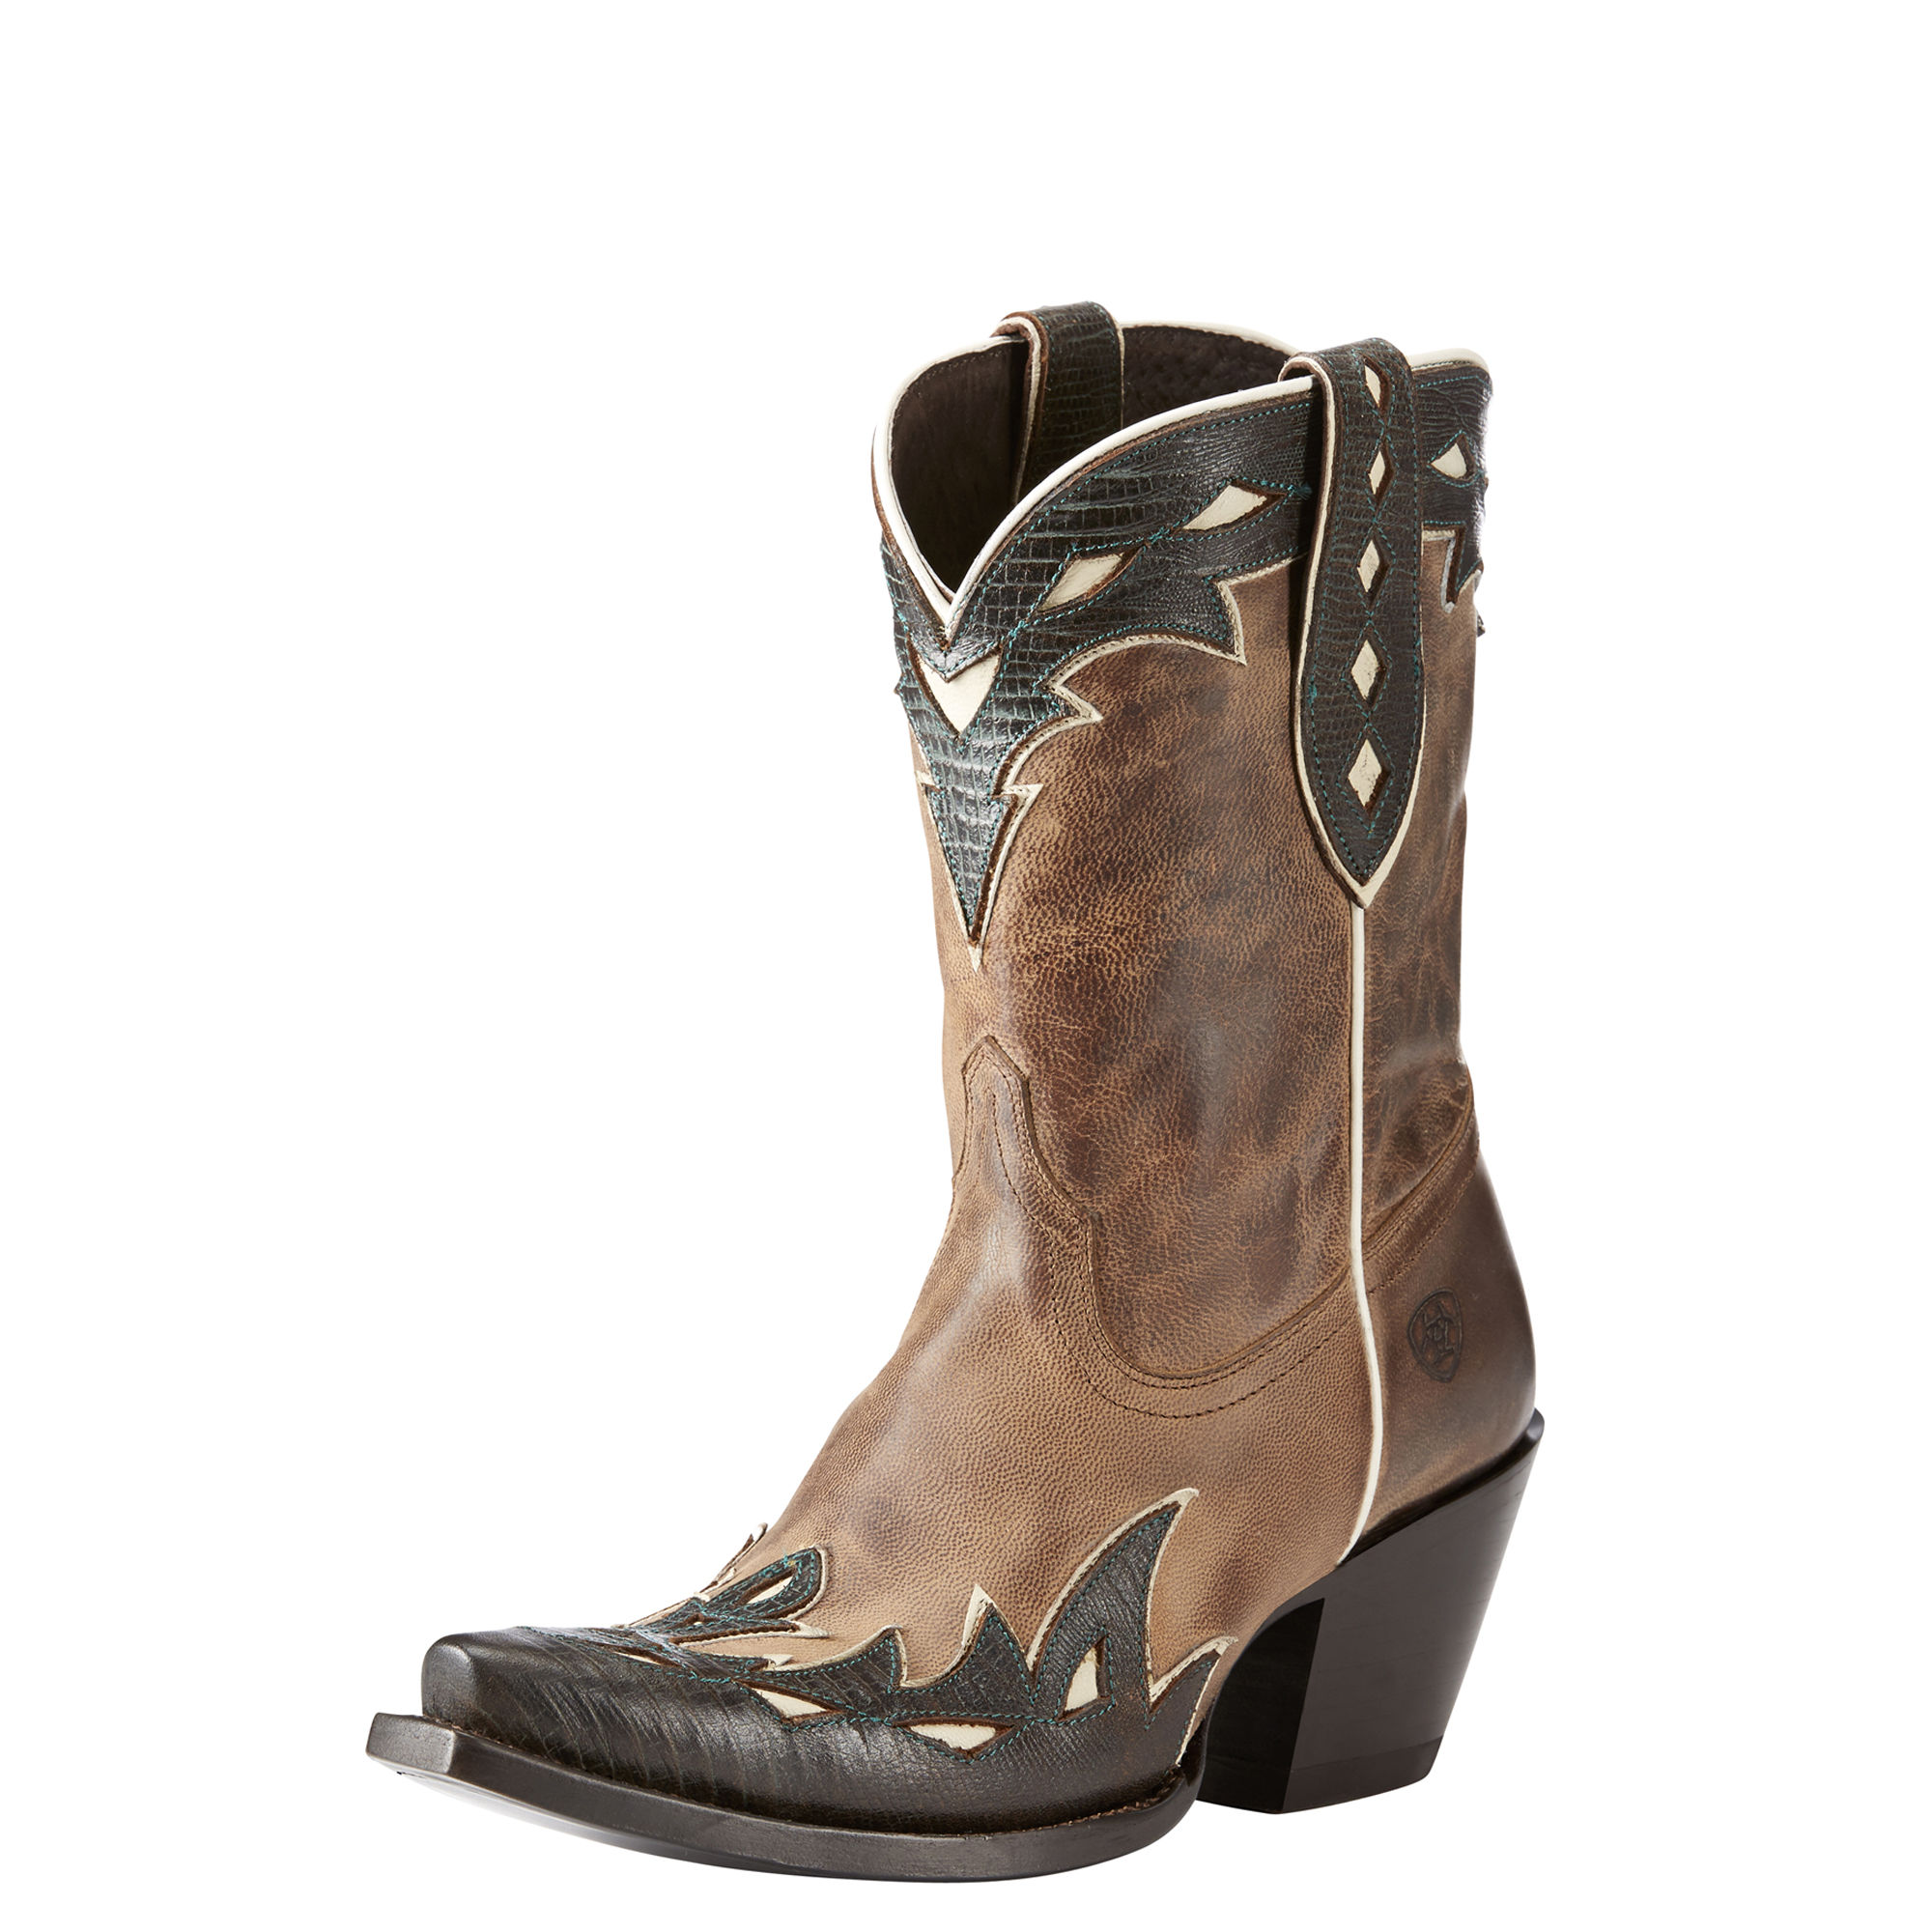 Women's Western Fashion Boots | Ariat